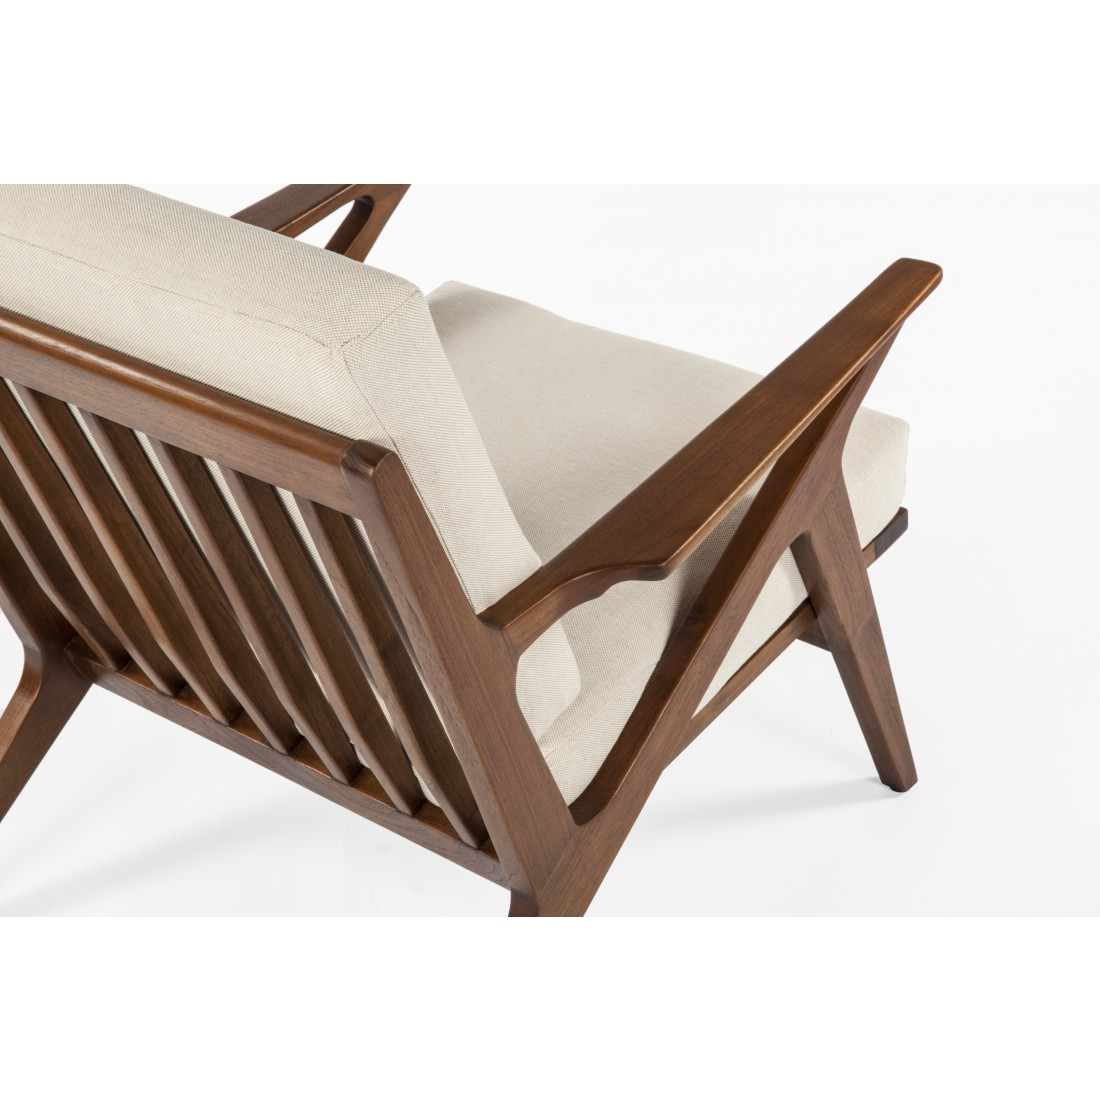 Image of: Mid Century Lounge Chair Model